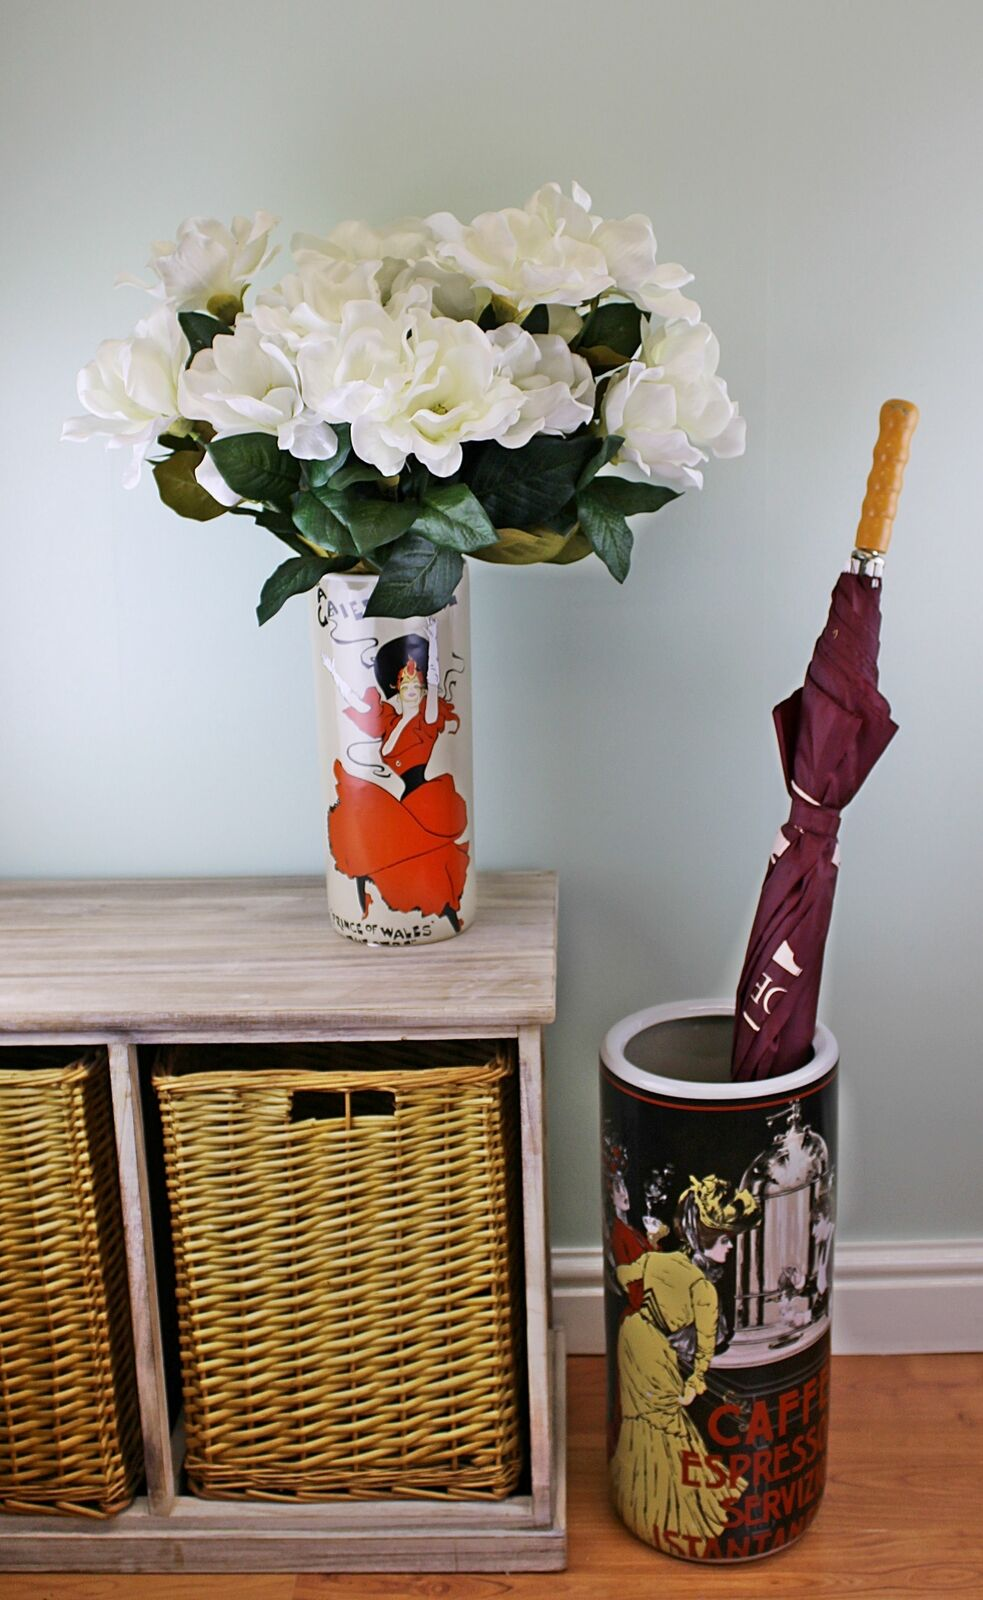 Umbrella stand, caffe espresso design with free vase